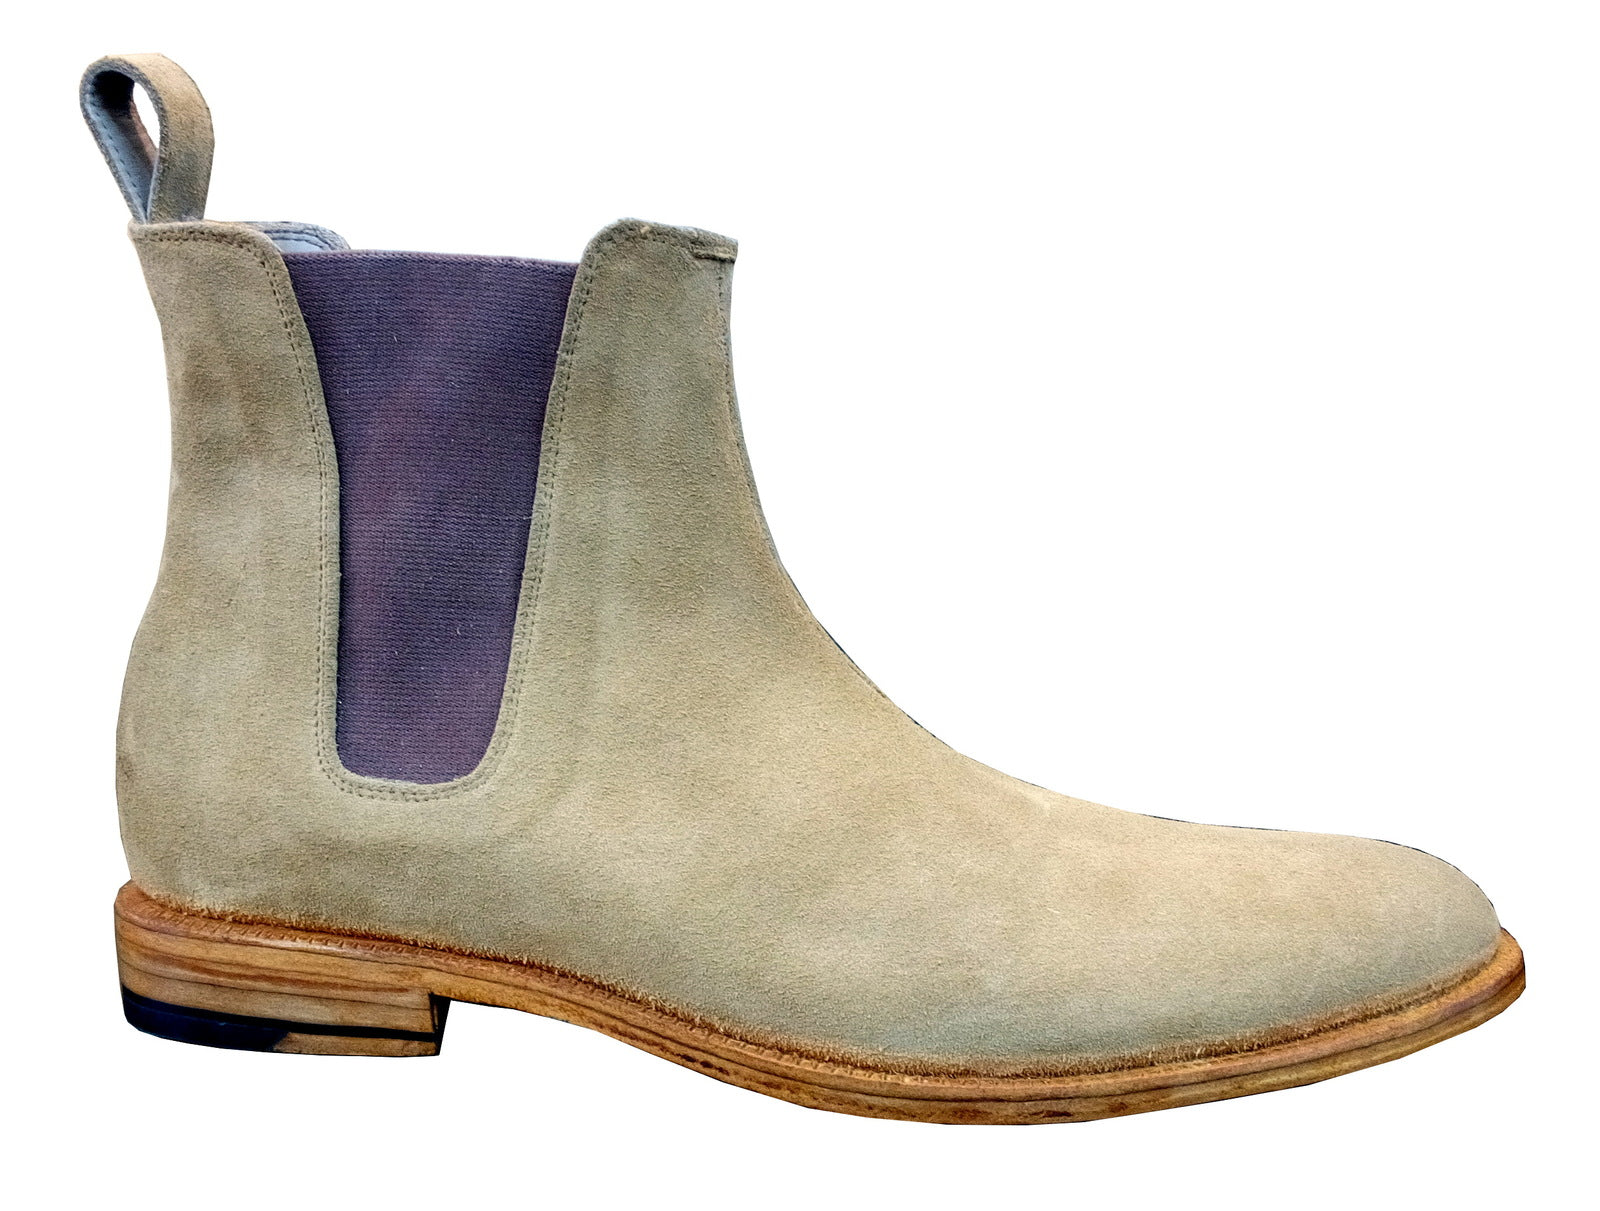 New Handmade Mens Light Brown Chelsea Suede Leather Boots,Men suede leather boot